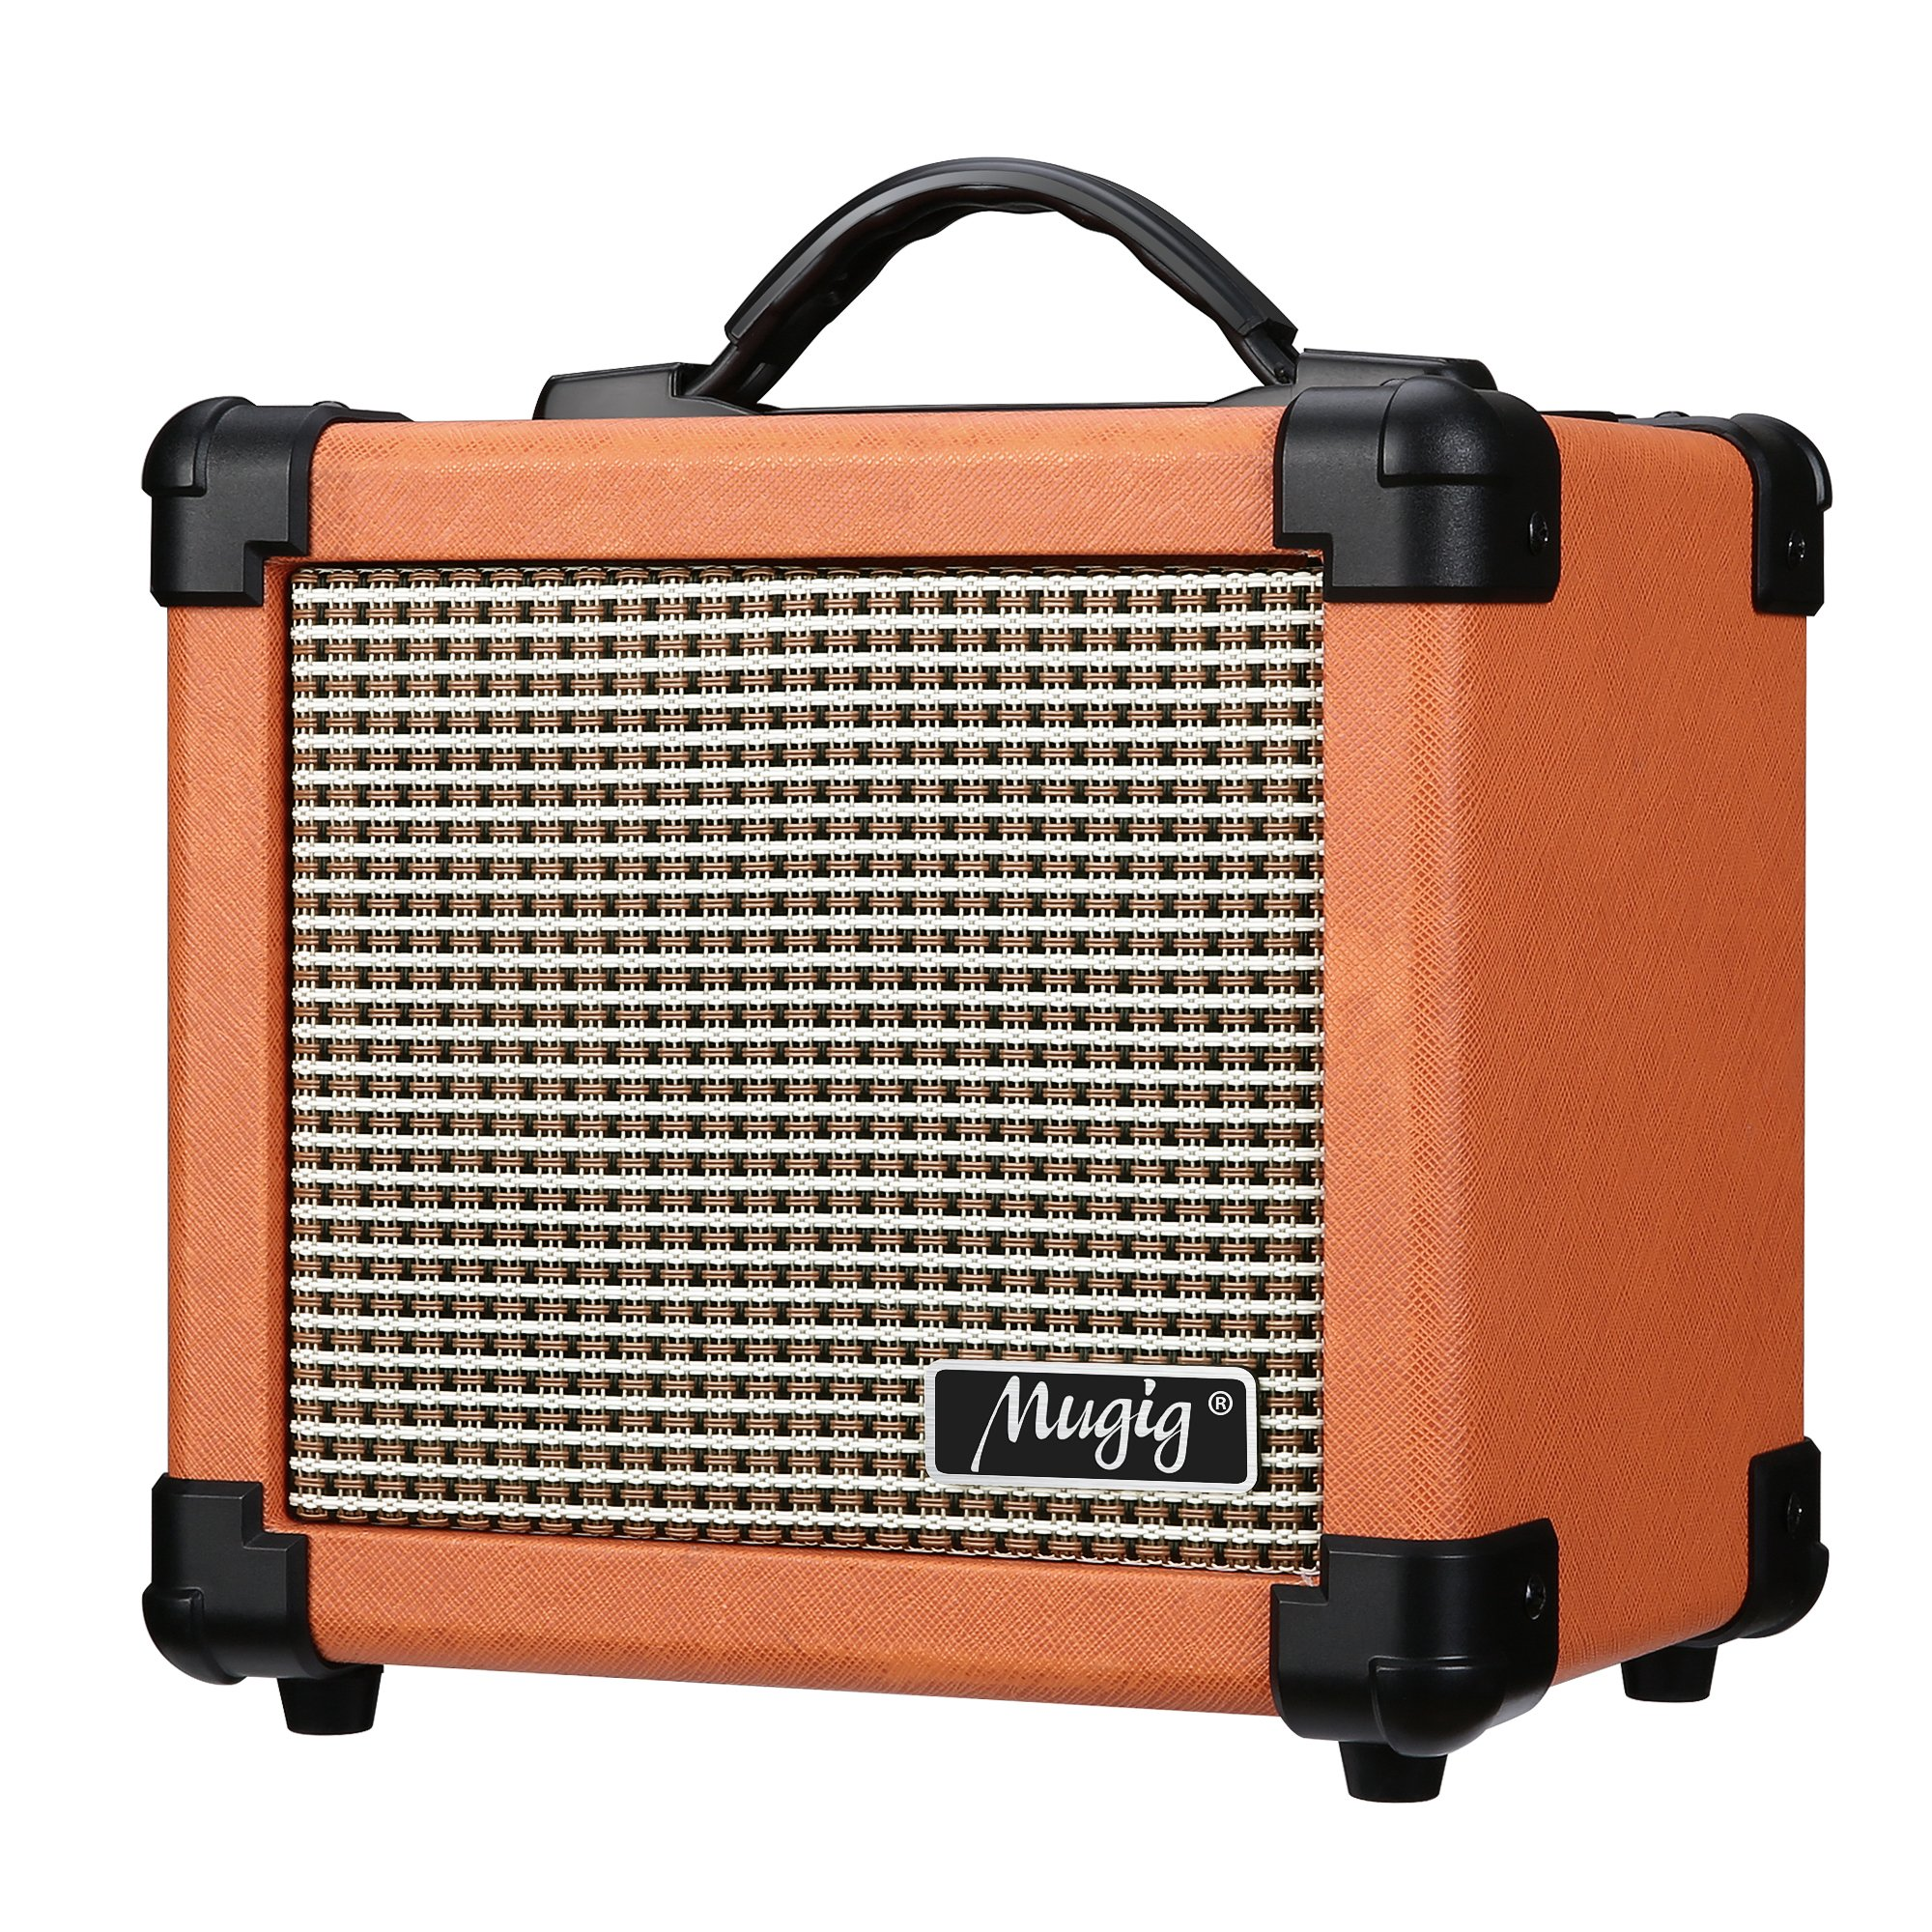 Mugig Guitar Amplifier 10W with Dist and Clean Effect, Support Aux Input and Bass Treble Adjust by Mugig